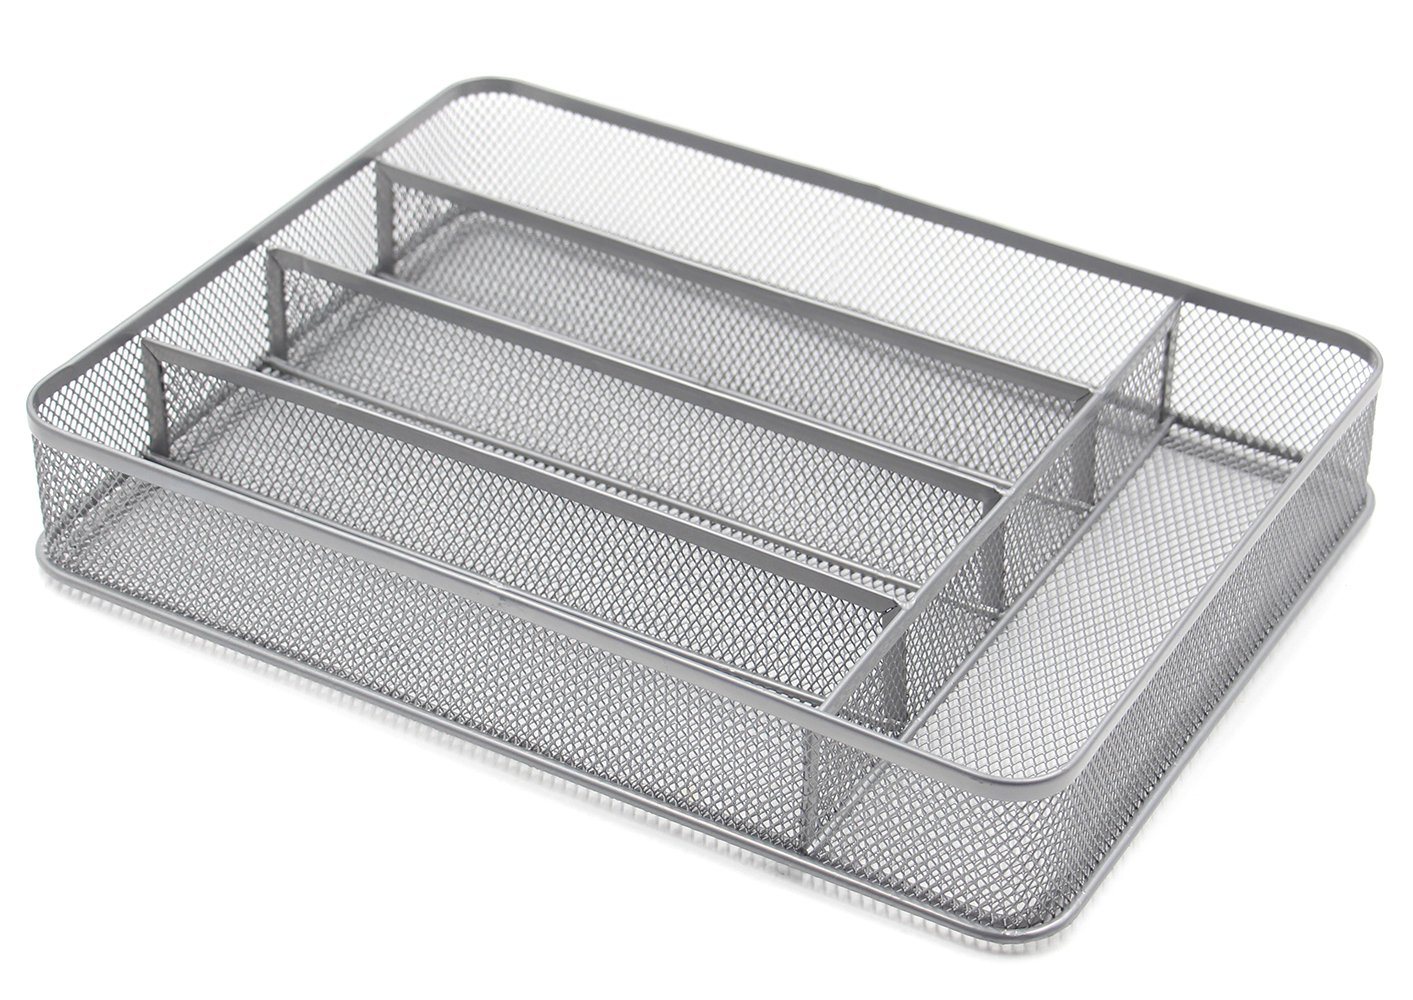 ESYLIFE 5 Compartment Mesh Kitchen Cutlery Trays Silverware Storage Kitchen Utensil Flatware Tray, Silver by Esy-Life (Image #1)